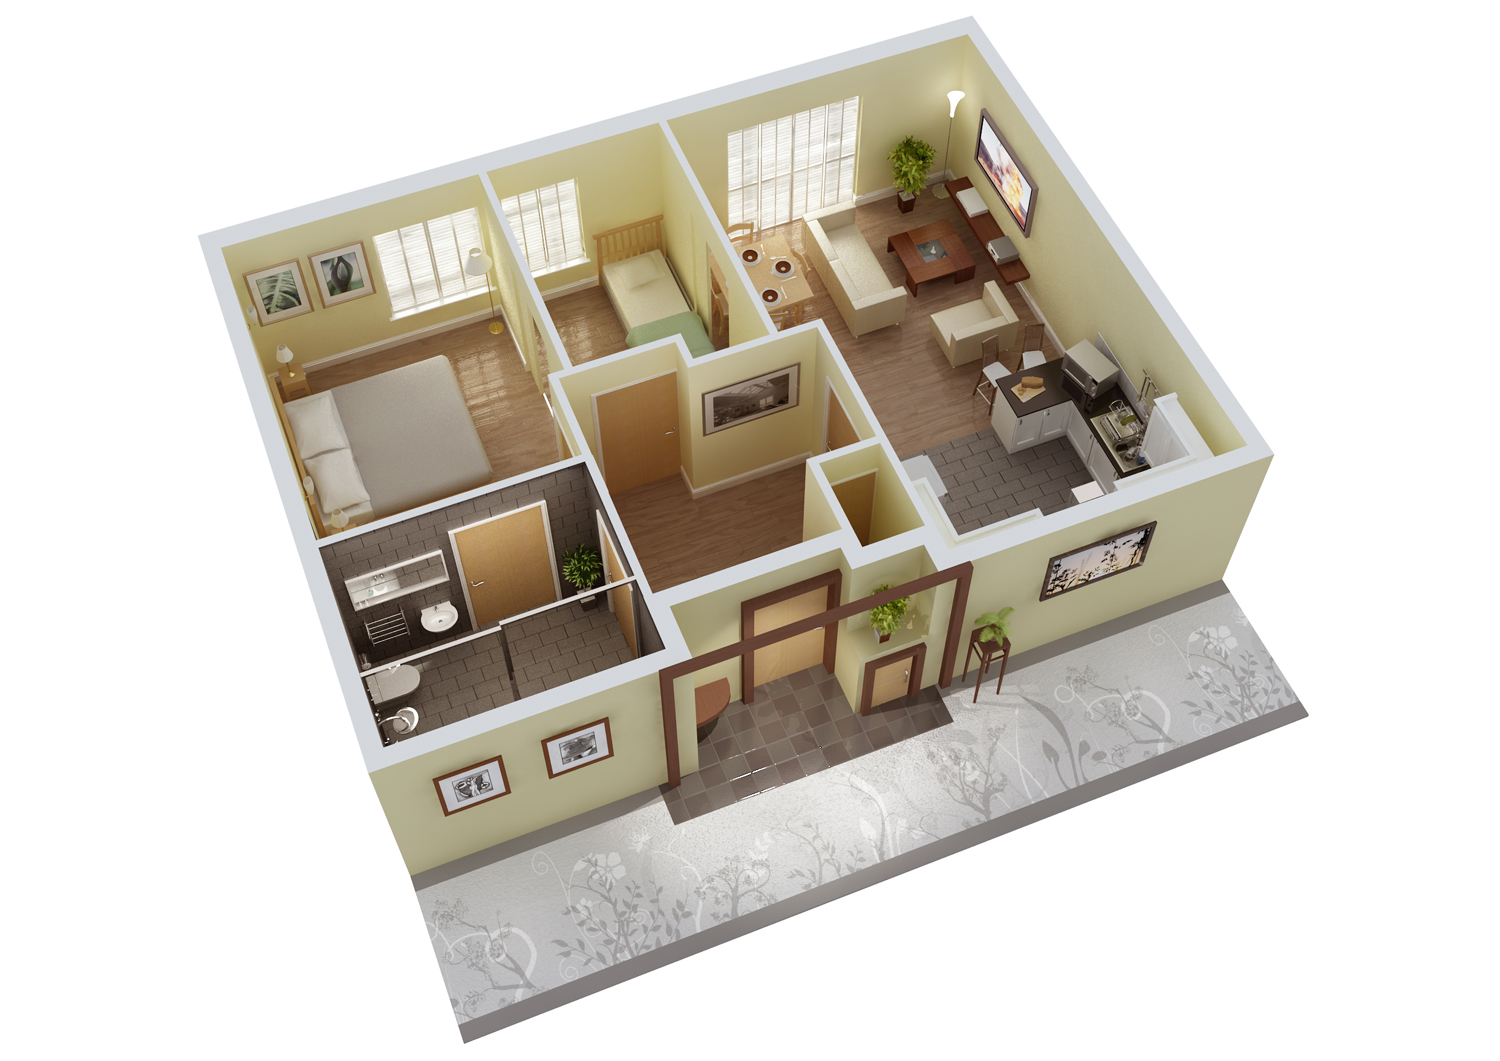 Mathematics resources project 3d floor plan for House blueprints